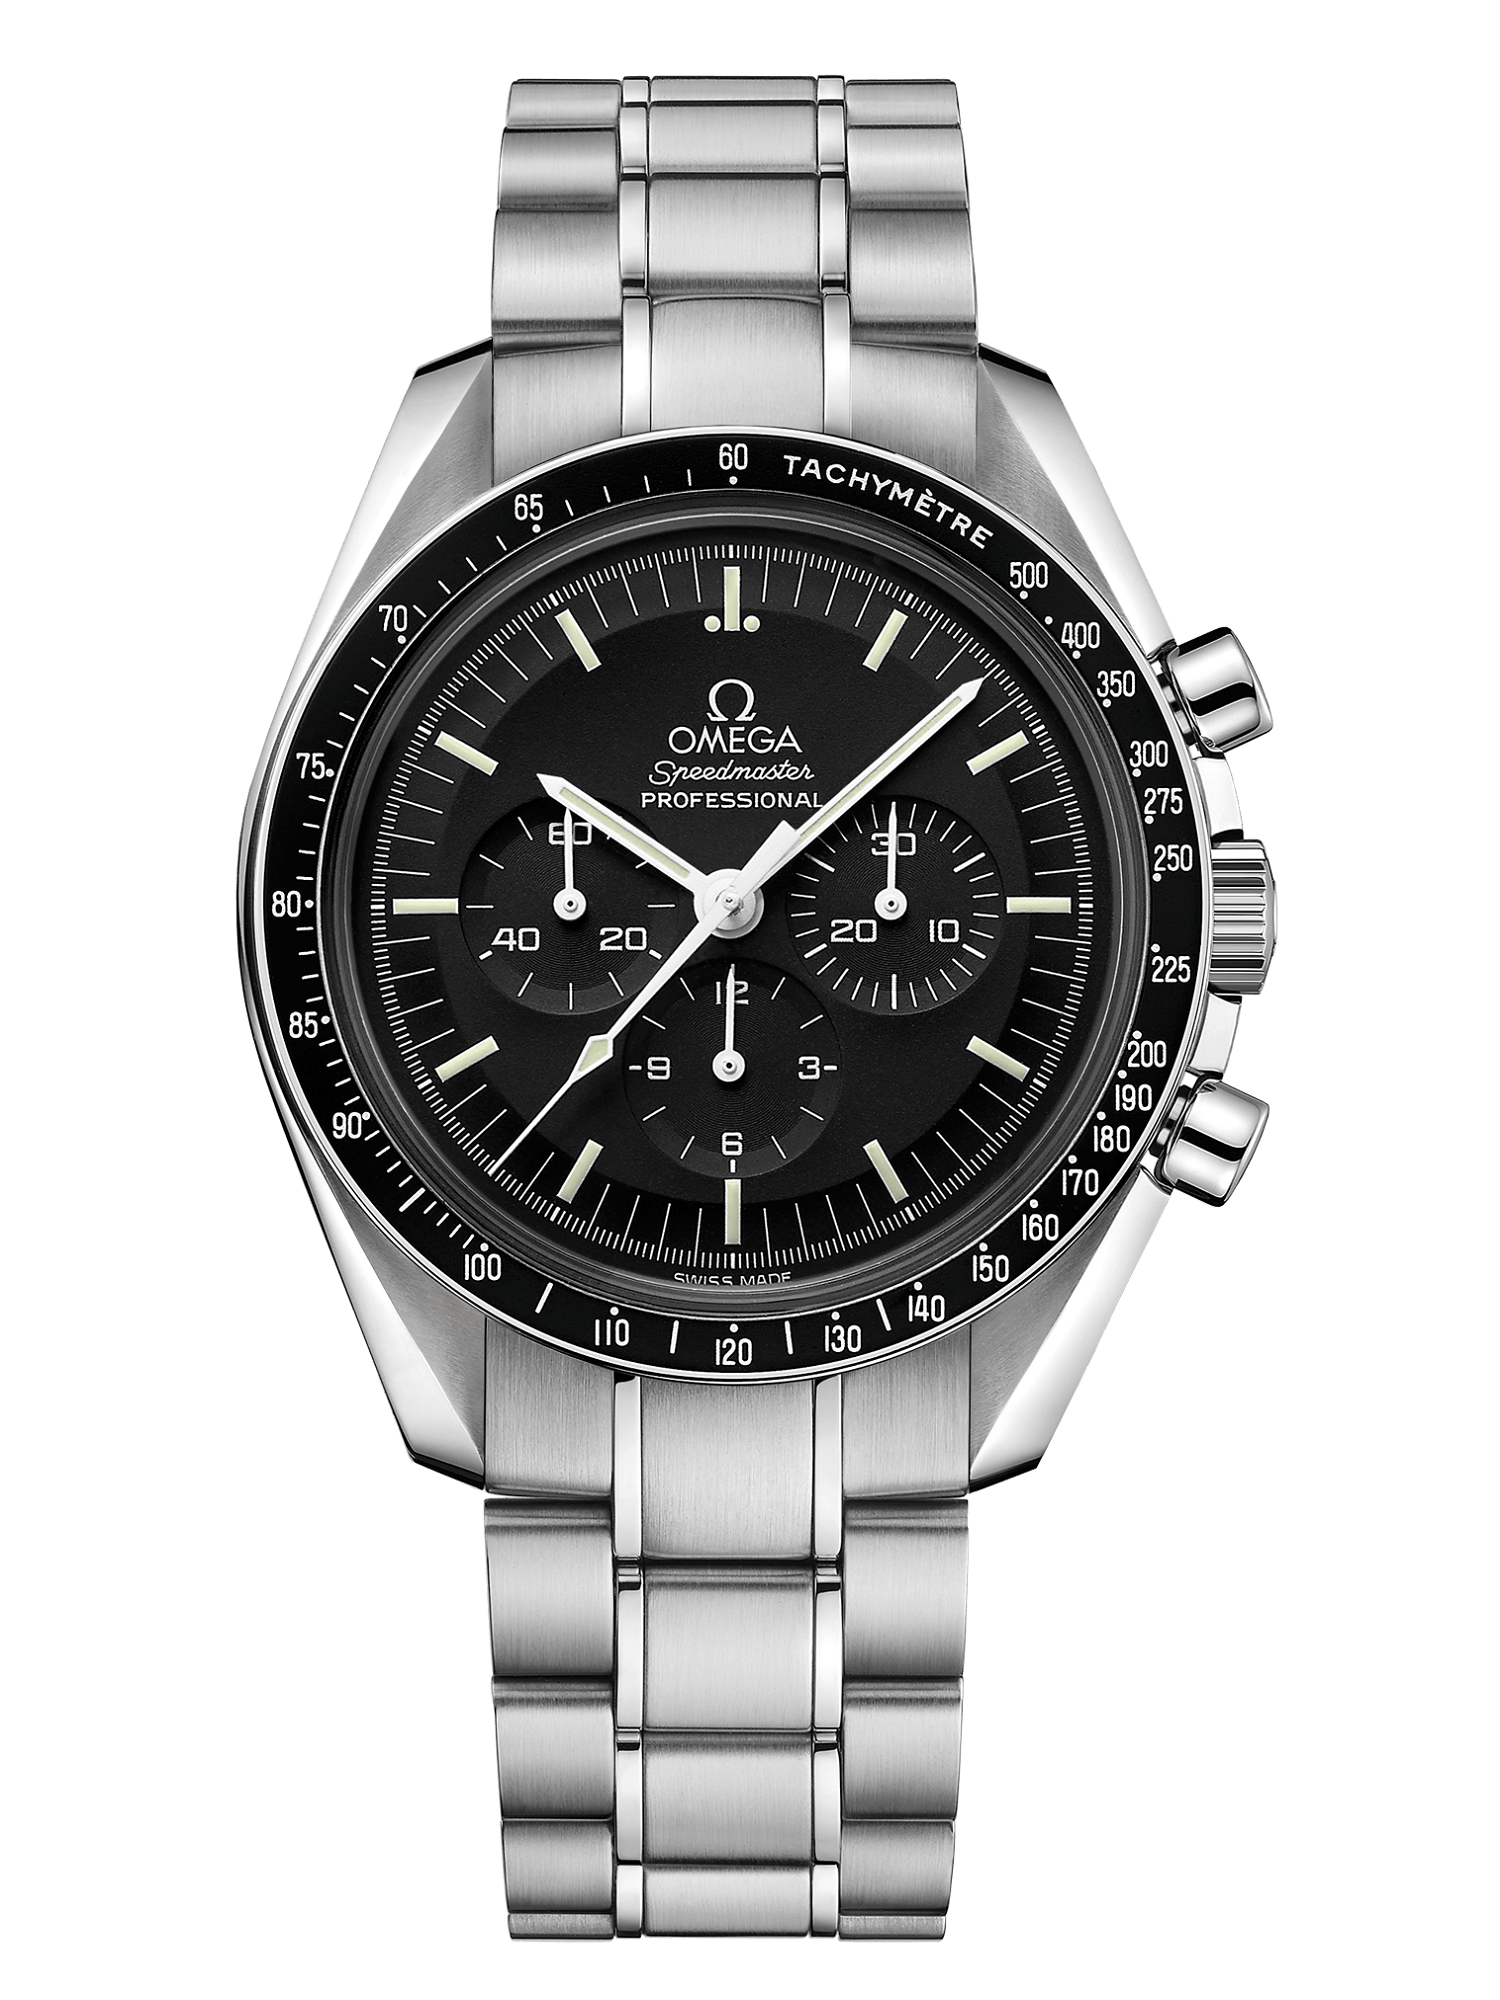 10 Best Sapphire Crystal Watches in 2019 – Buyer's Guide & Reviews! 12